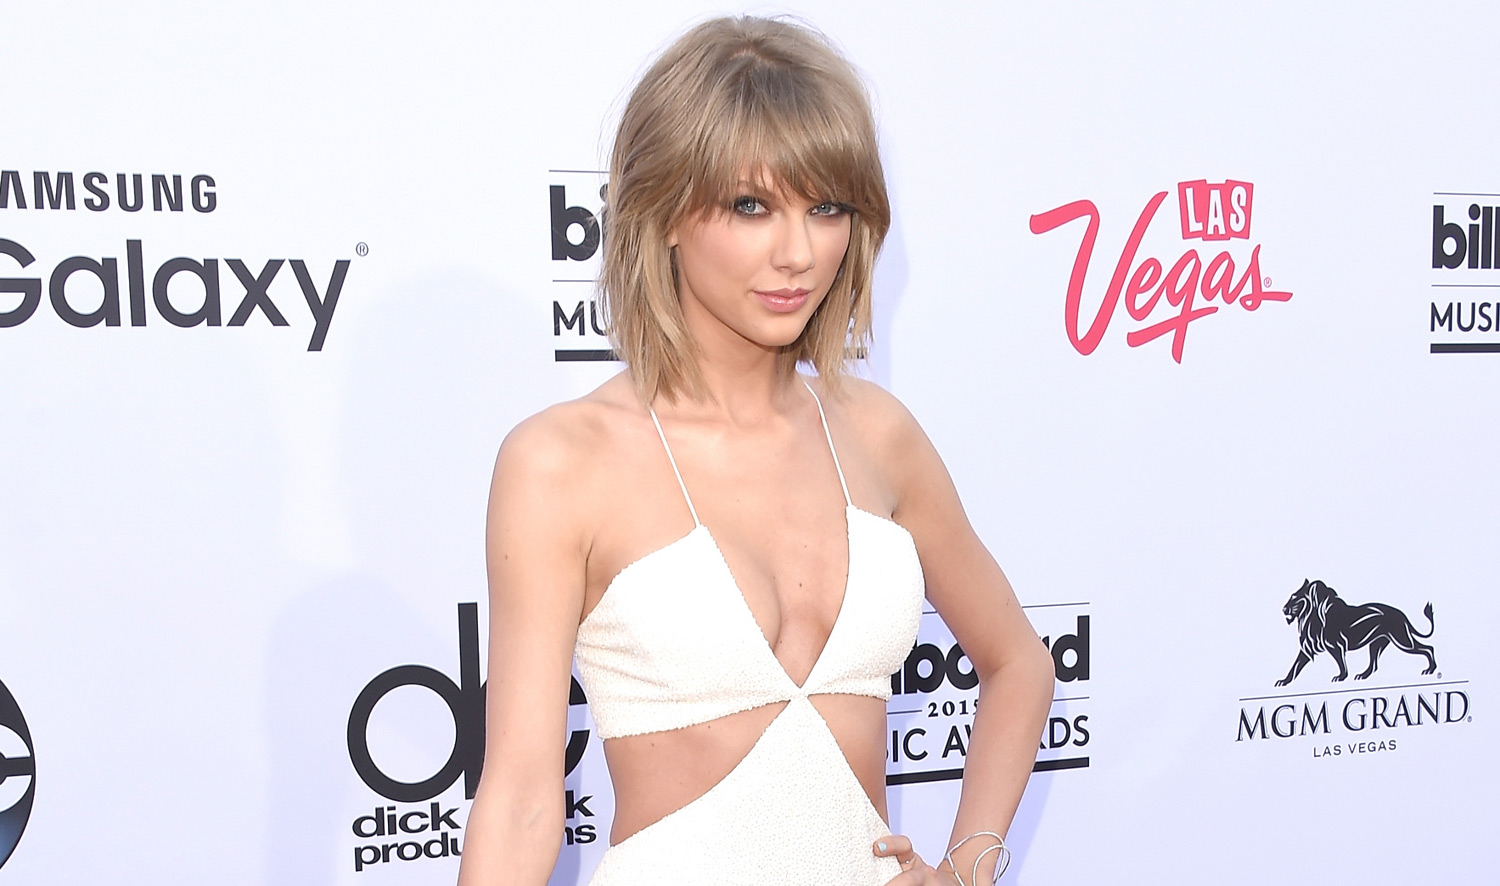 taylor-swift-donates-money-to-louisiana-school-after-floods-social